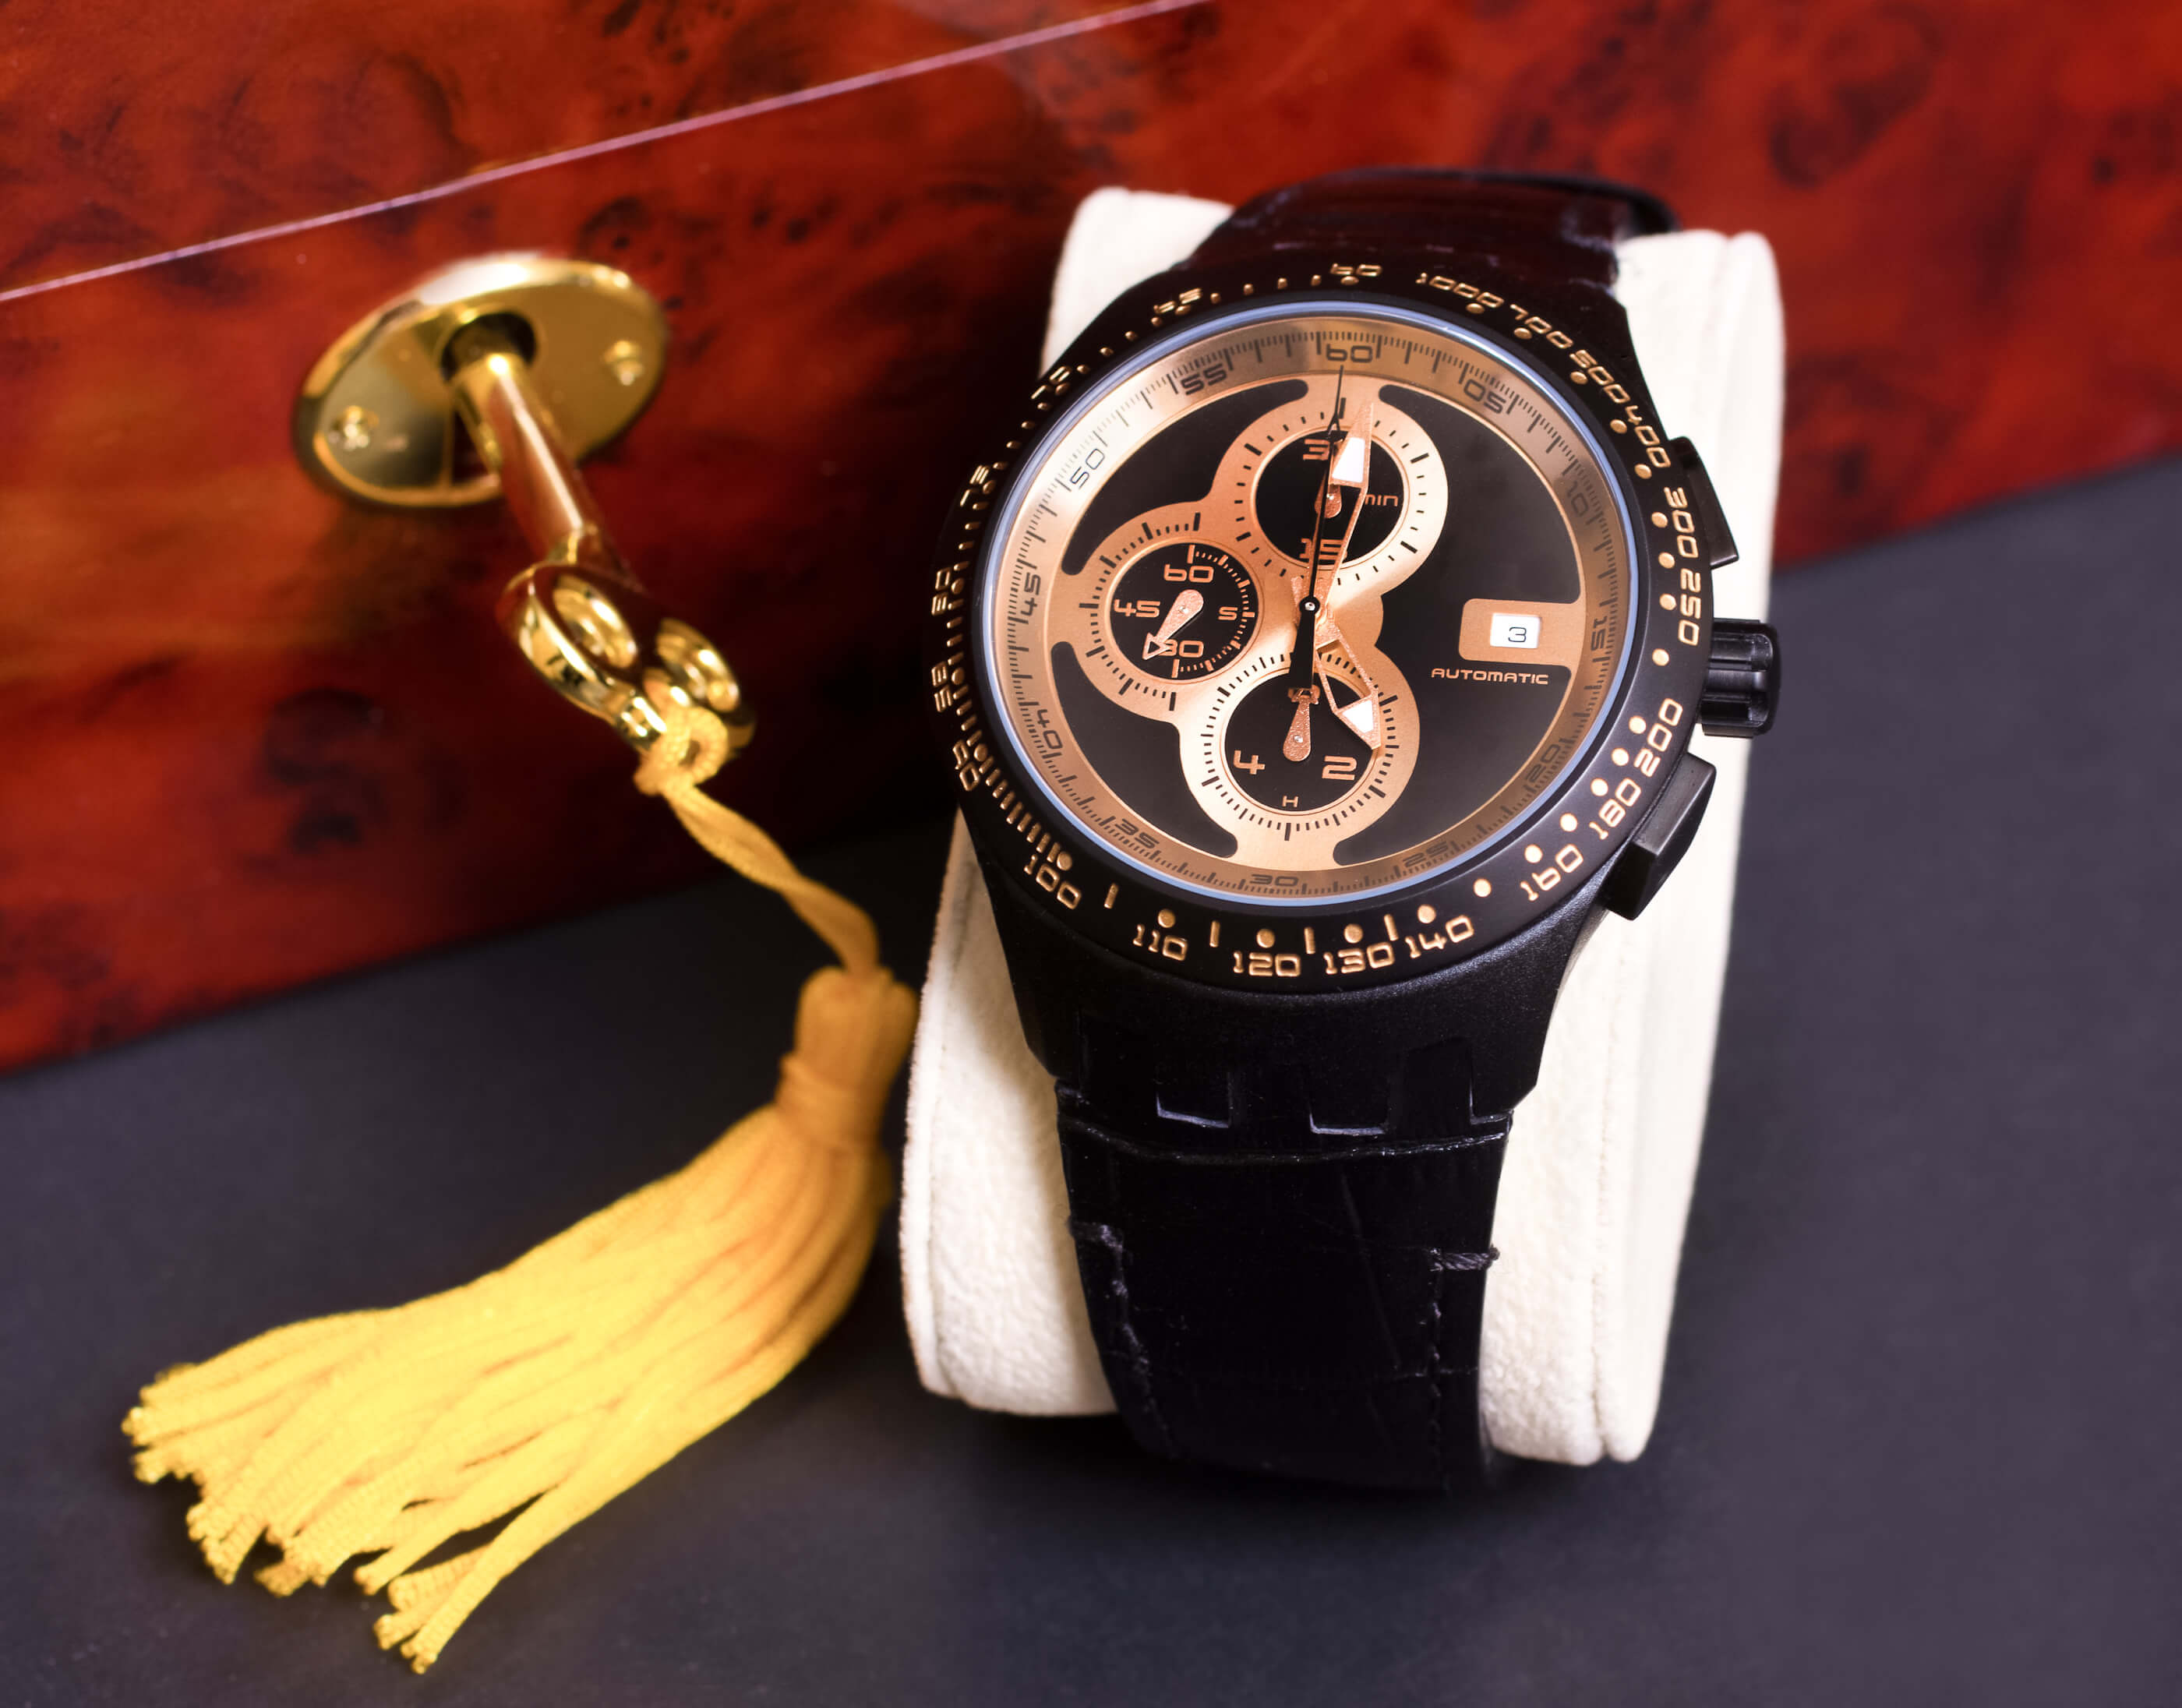 The key to luxury watch communications